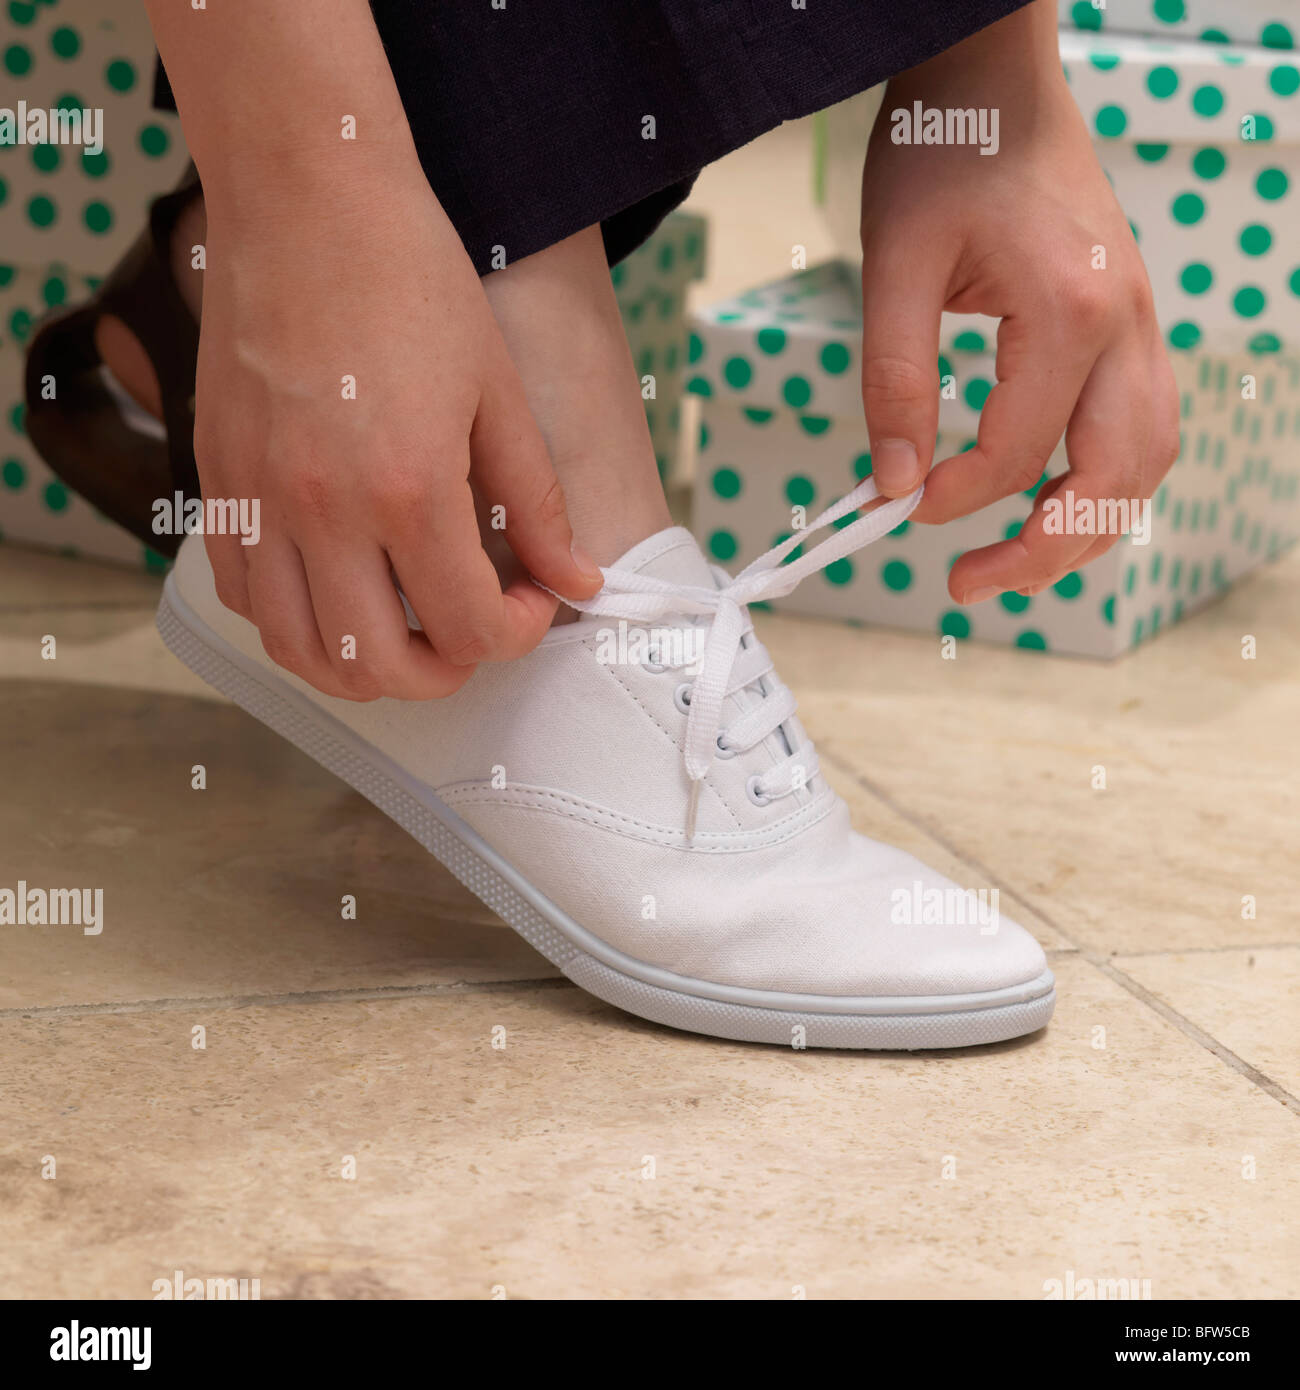 Putting on a shoe - Stock Image